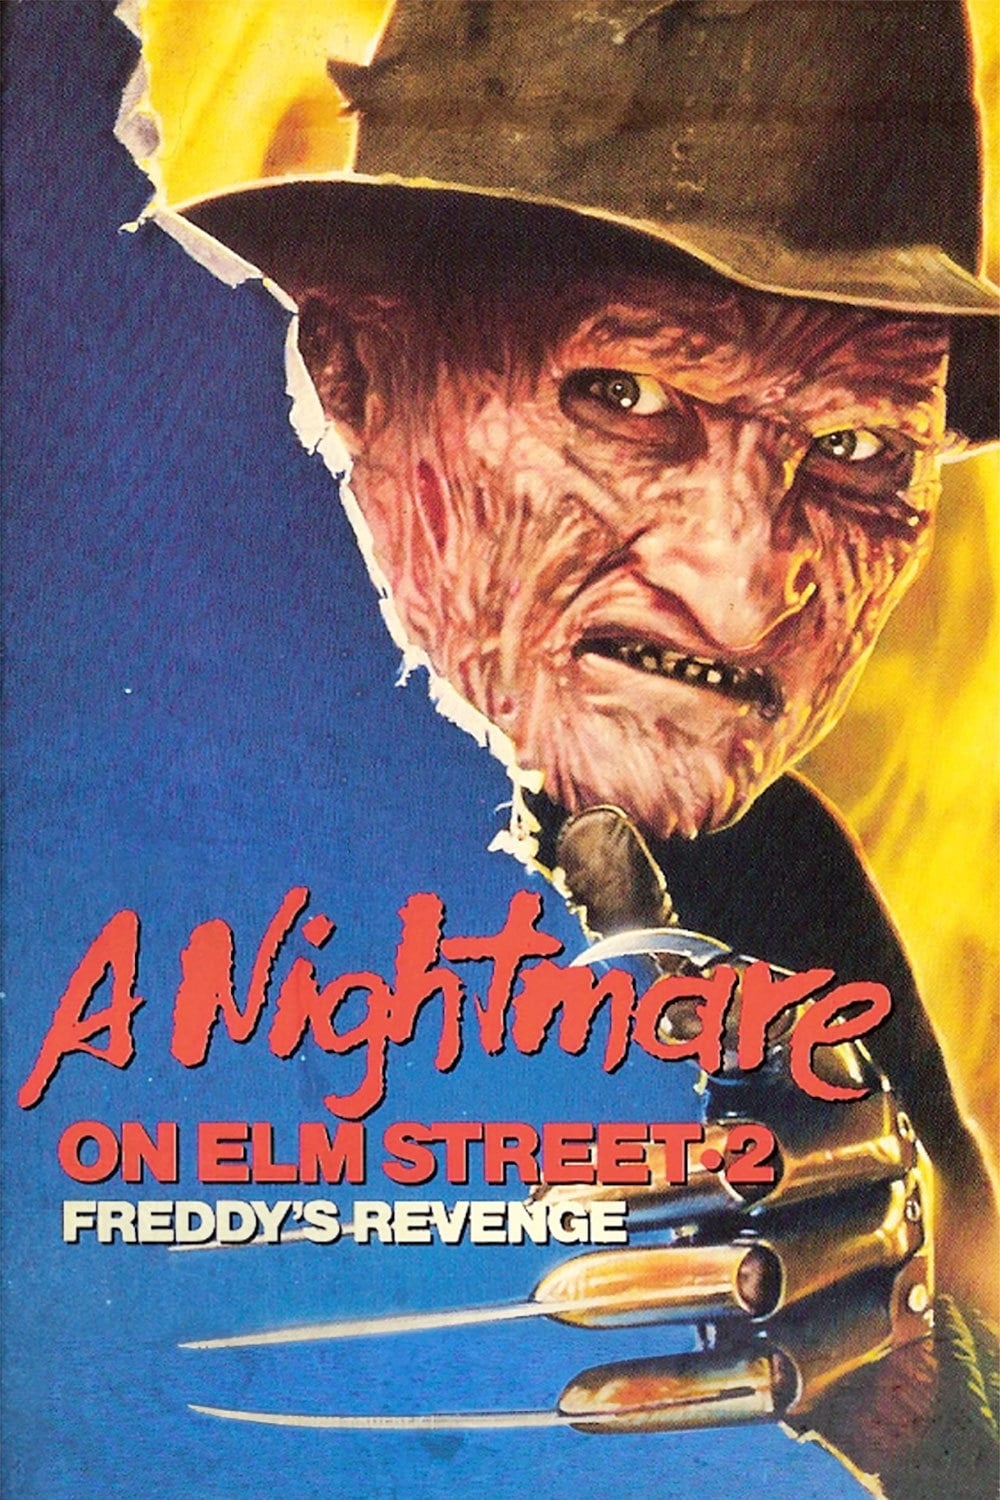 Kim myers a nightmare on elm st part 2 freddy039s revenge - 2 10